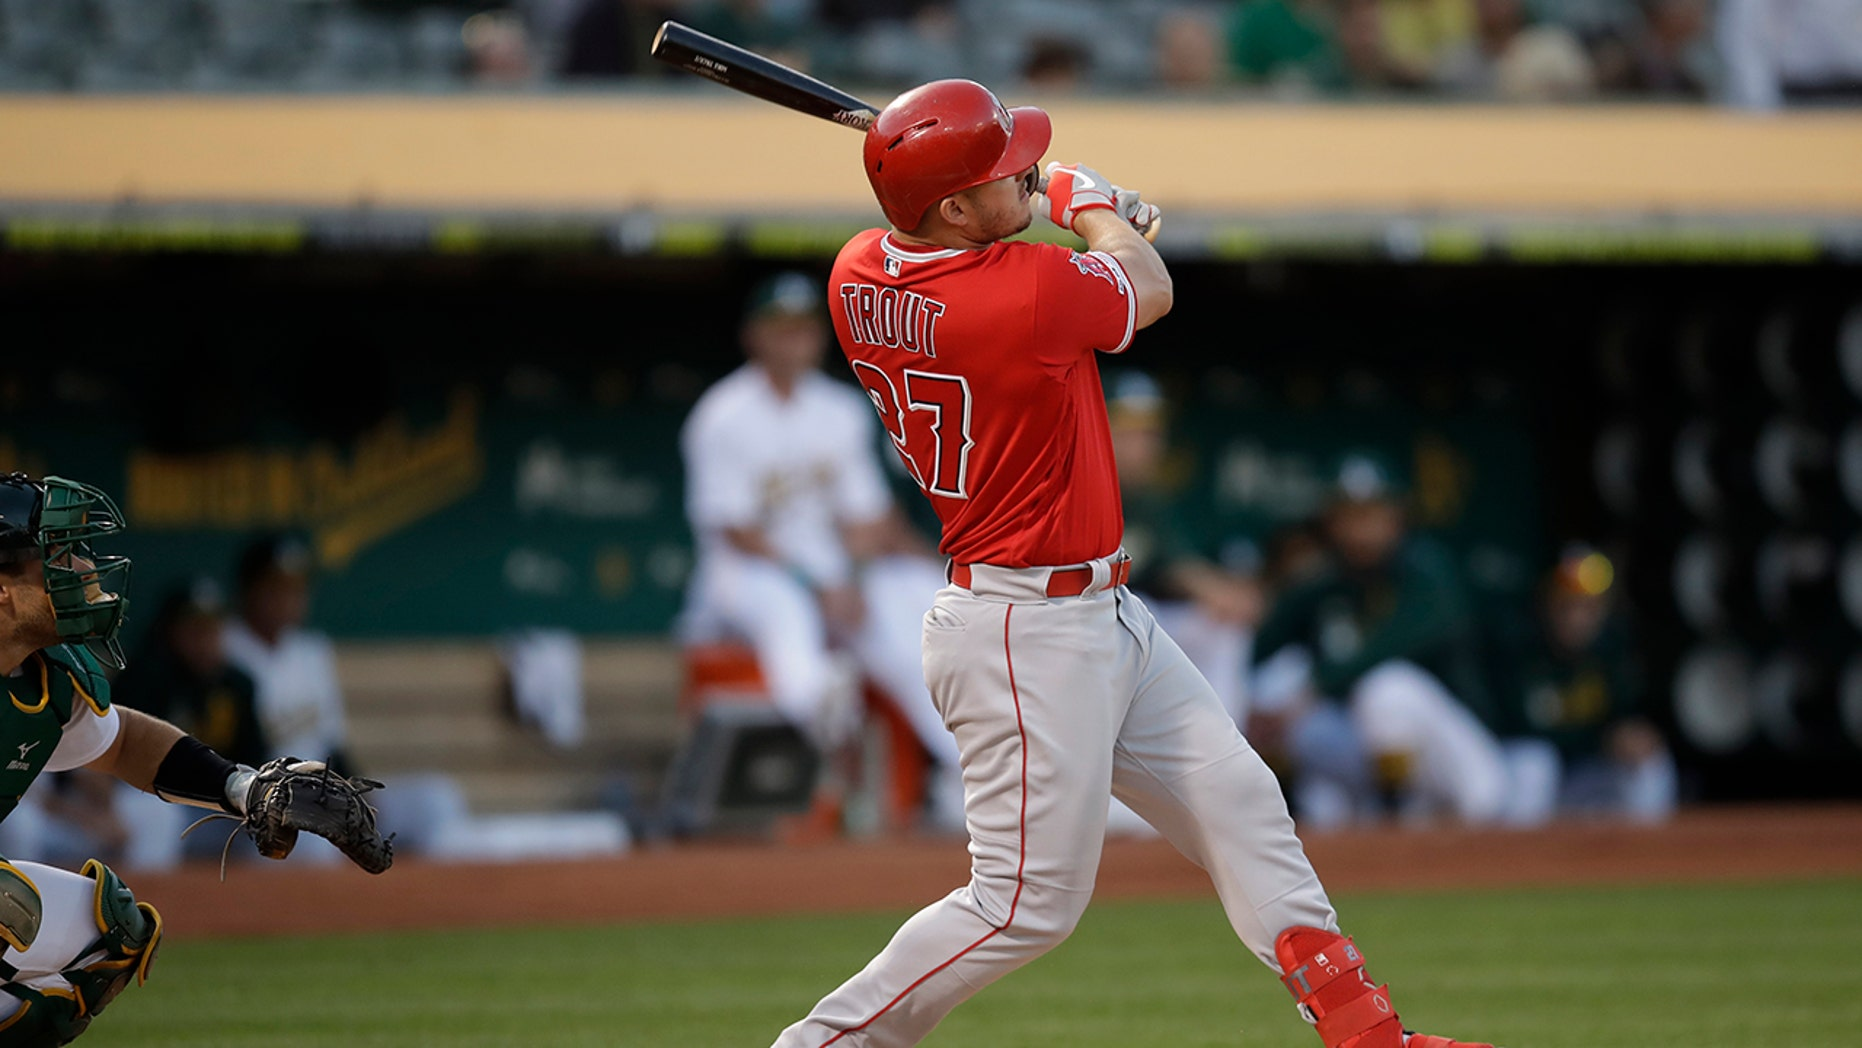 Westlake Legal Group MLB-Mike-Trout7 Angels' Mike Trout to have season-ending foot surgery fnc/sports fnc Associated Press article 4e078db3-bd4e-5f8d-9f00-bb230fdbe94d